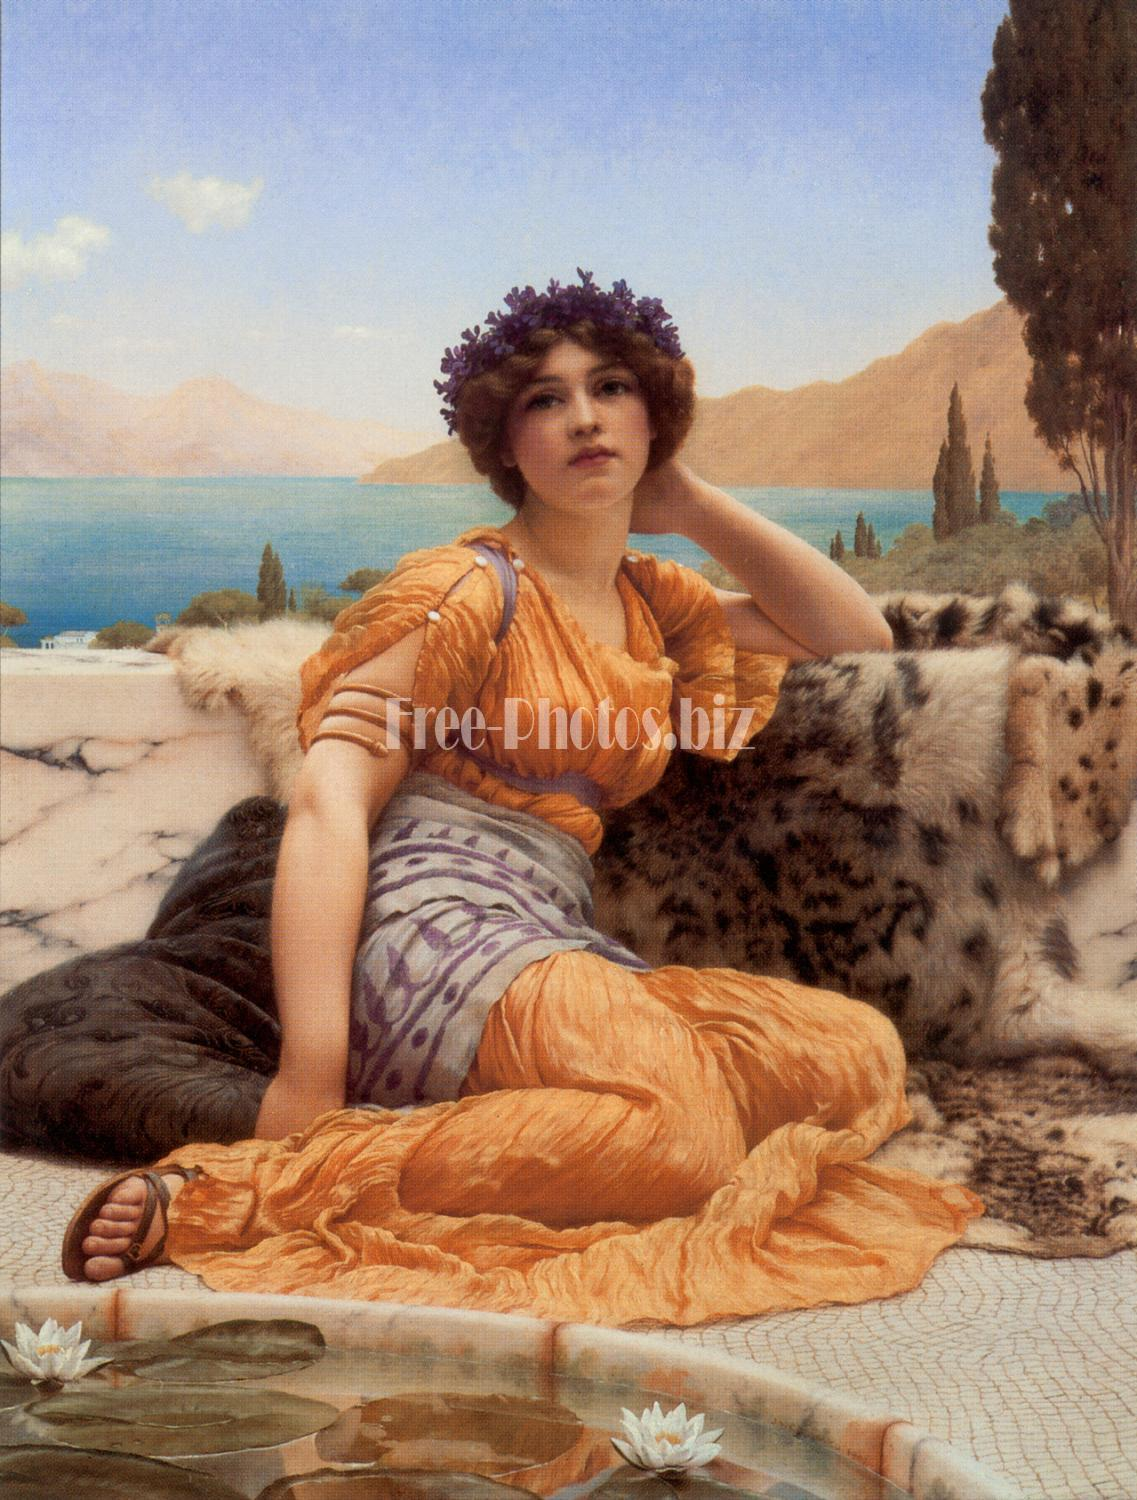 Godward With Violets Wreathed and Robe of Saffron Hue 1902